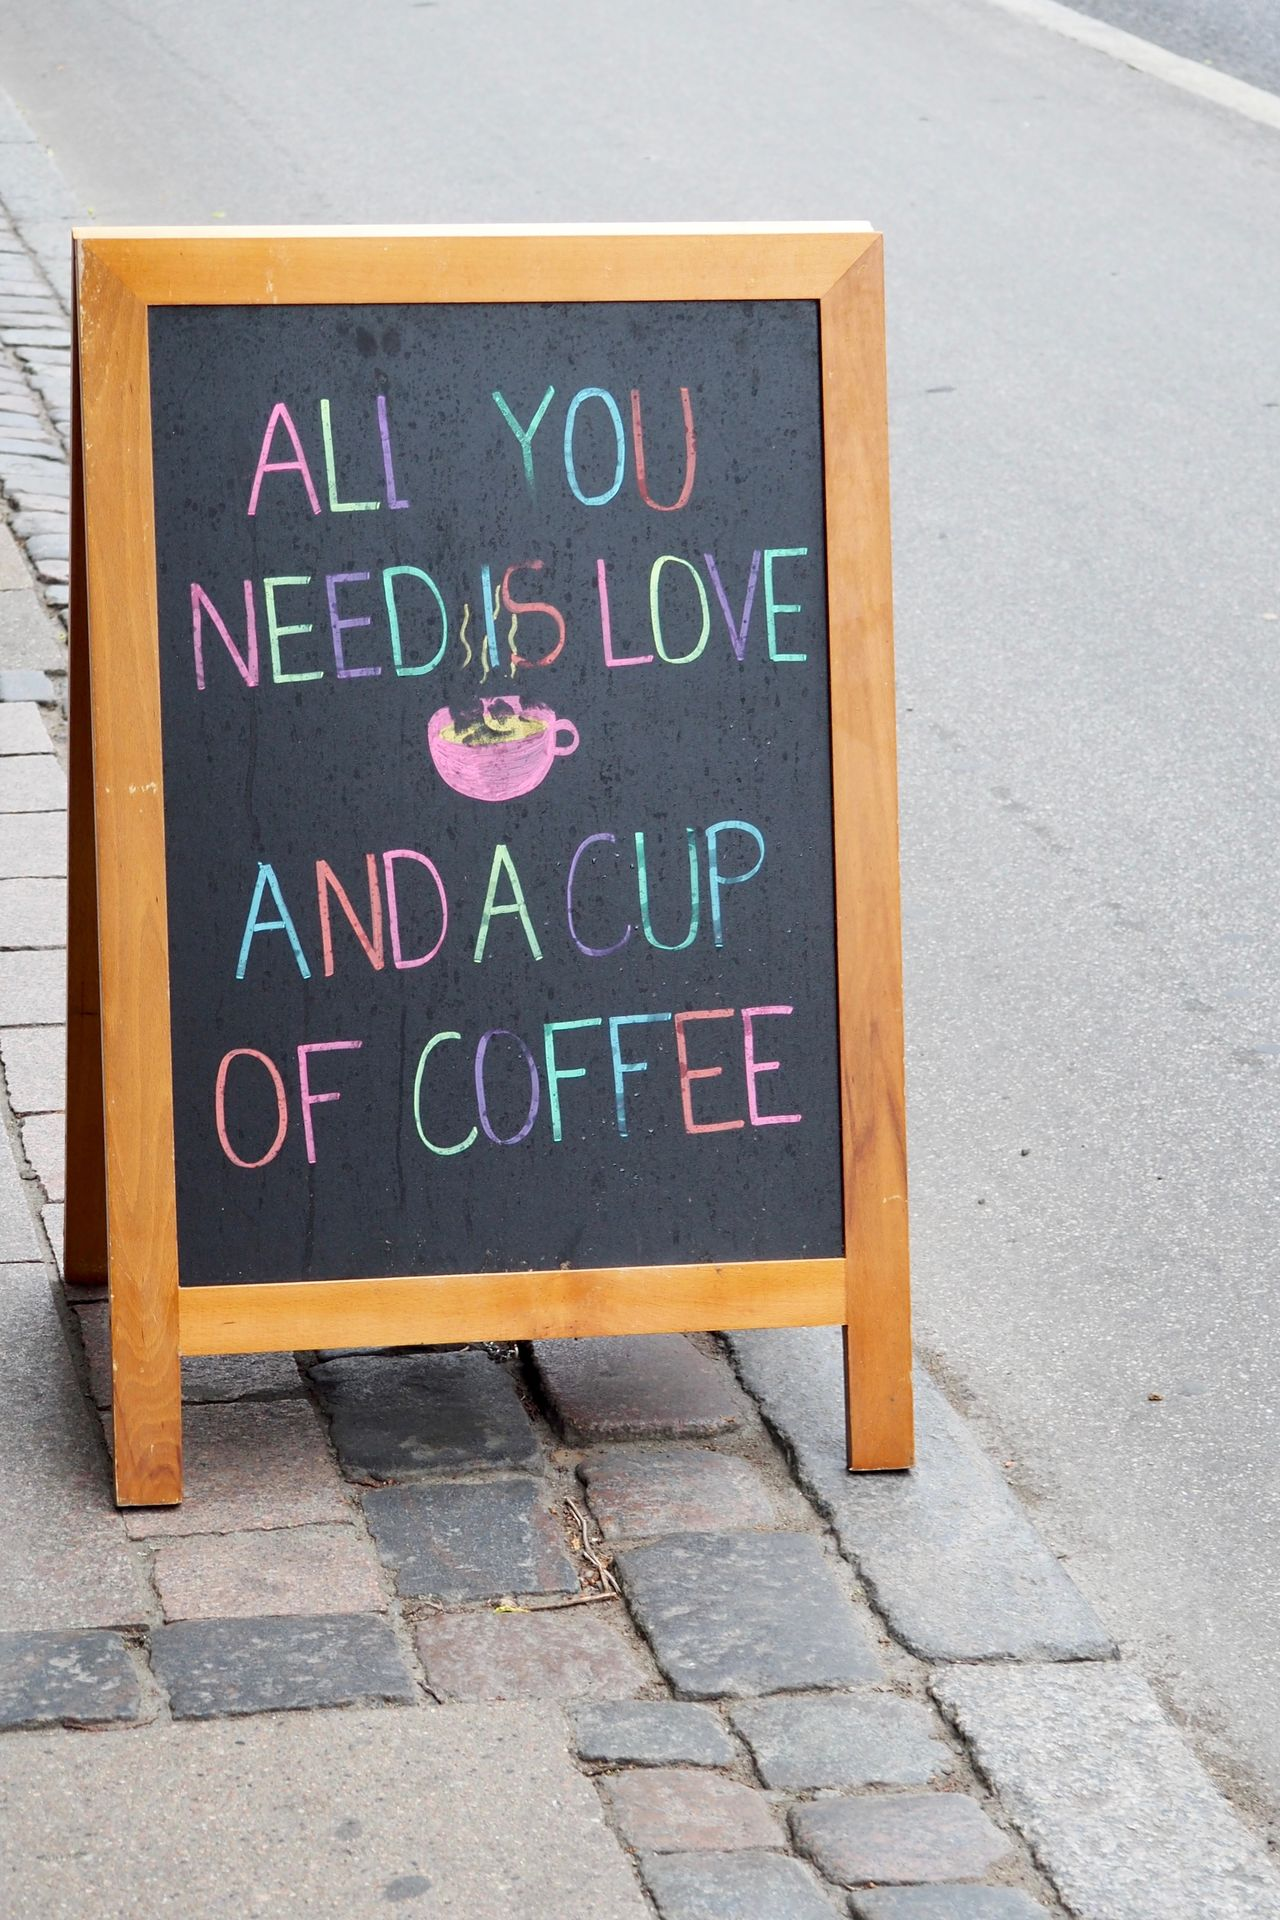 Cafe Christiania Close-up Coffee Communication Cup Day Happieness Hippie Love Message No People Outdoors Rainbow Colors Sidewalk Sign Street Text Travel Vacation Waking Up